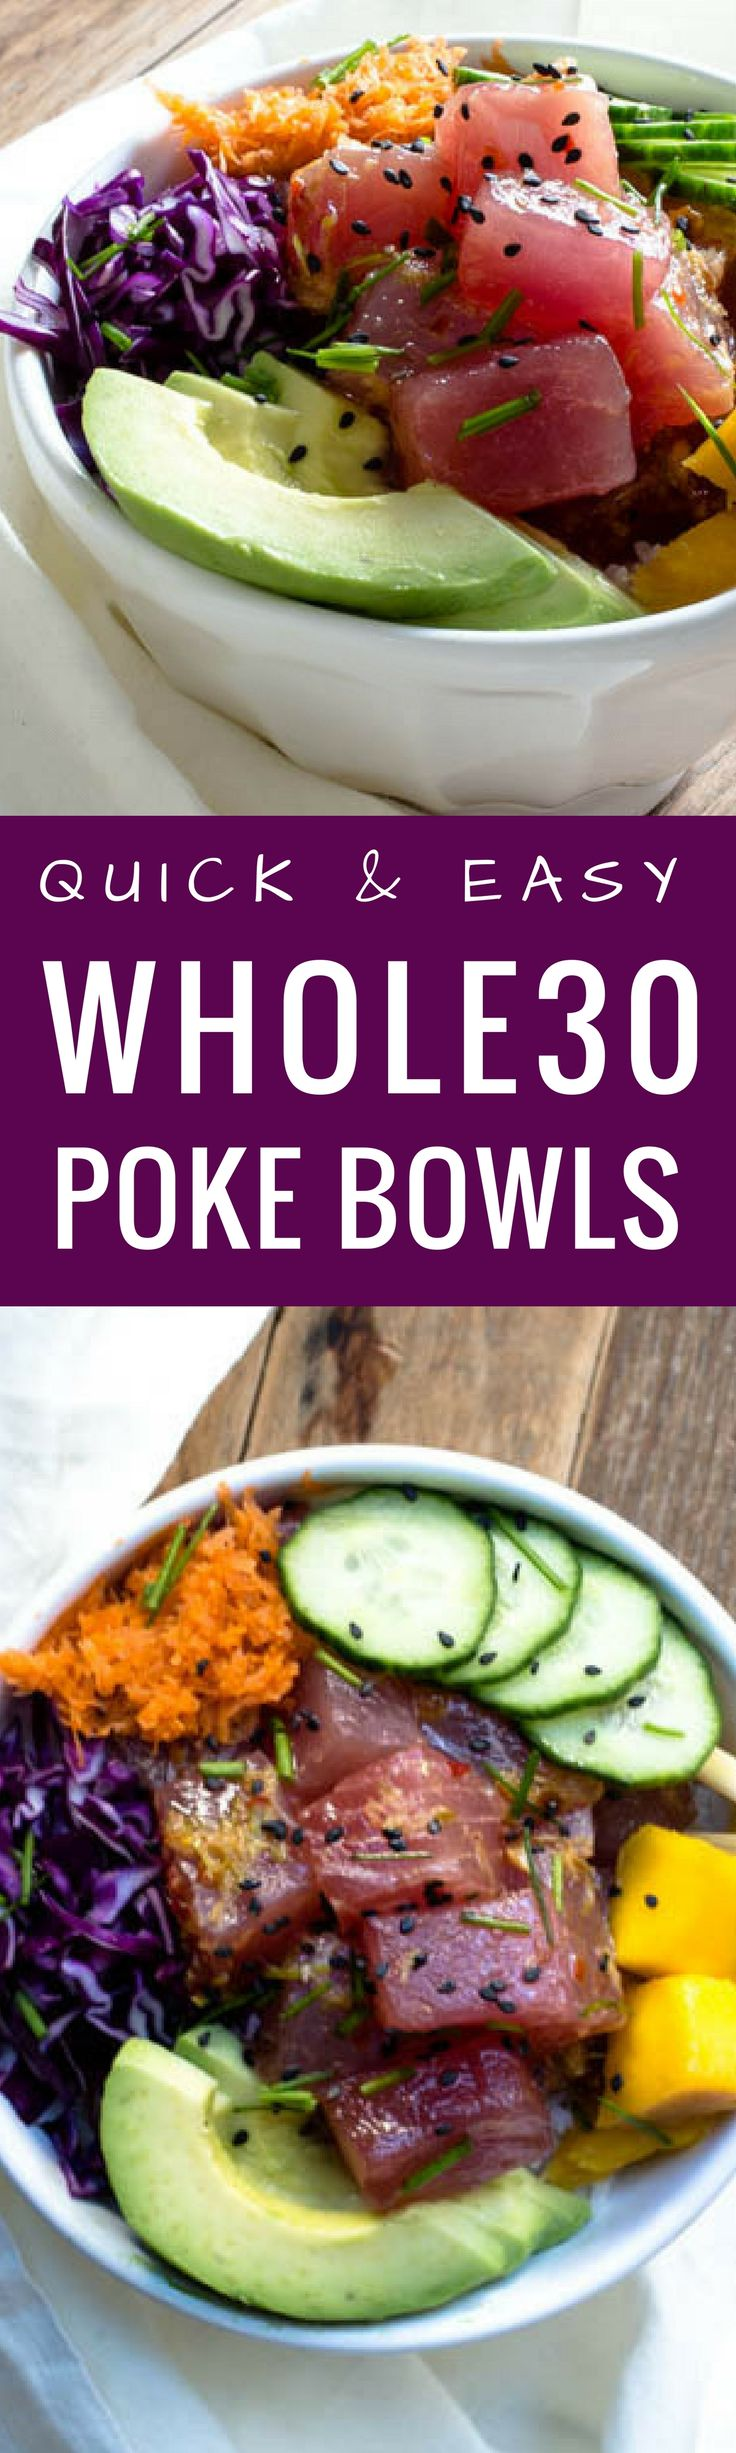 Quick and easy poke bowls recipe. Paleo poke bowls. Healthy, homemade, gluten free poke bowl recipe. Tuna poke bowls. How to make the perfect poke bowl at home! Whole30 poke recipe. Easy whole30 dinner. Whole30 recipes. via @themovementmenu